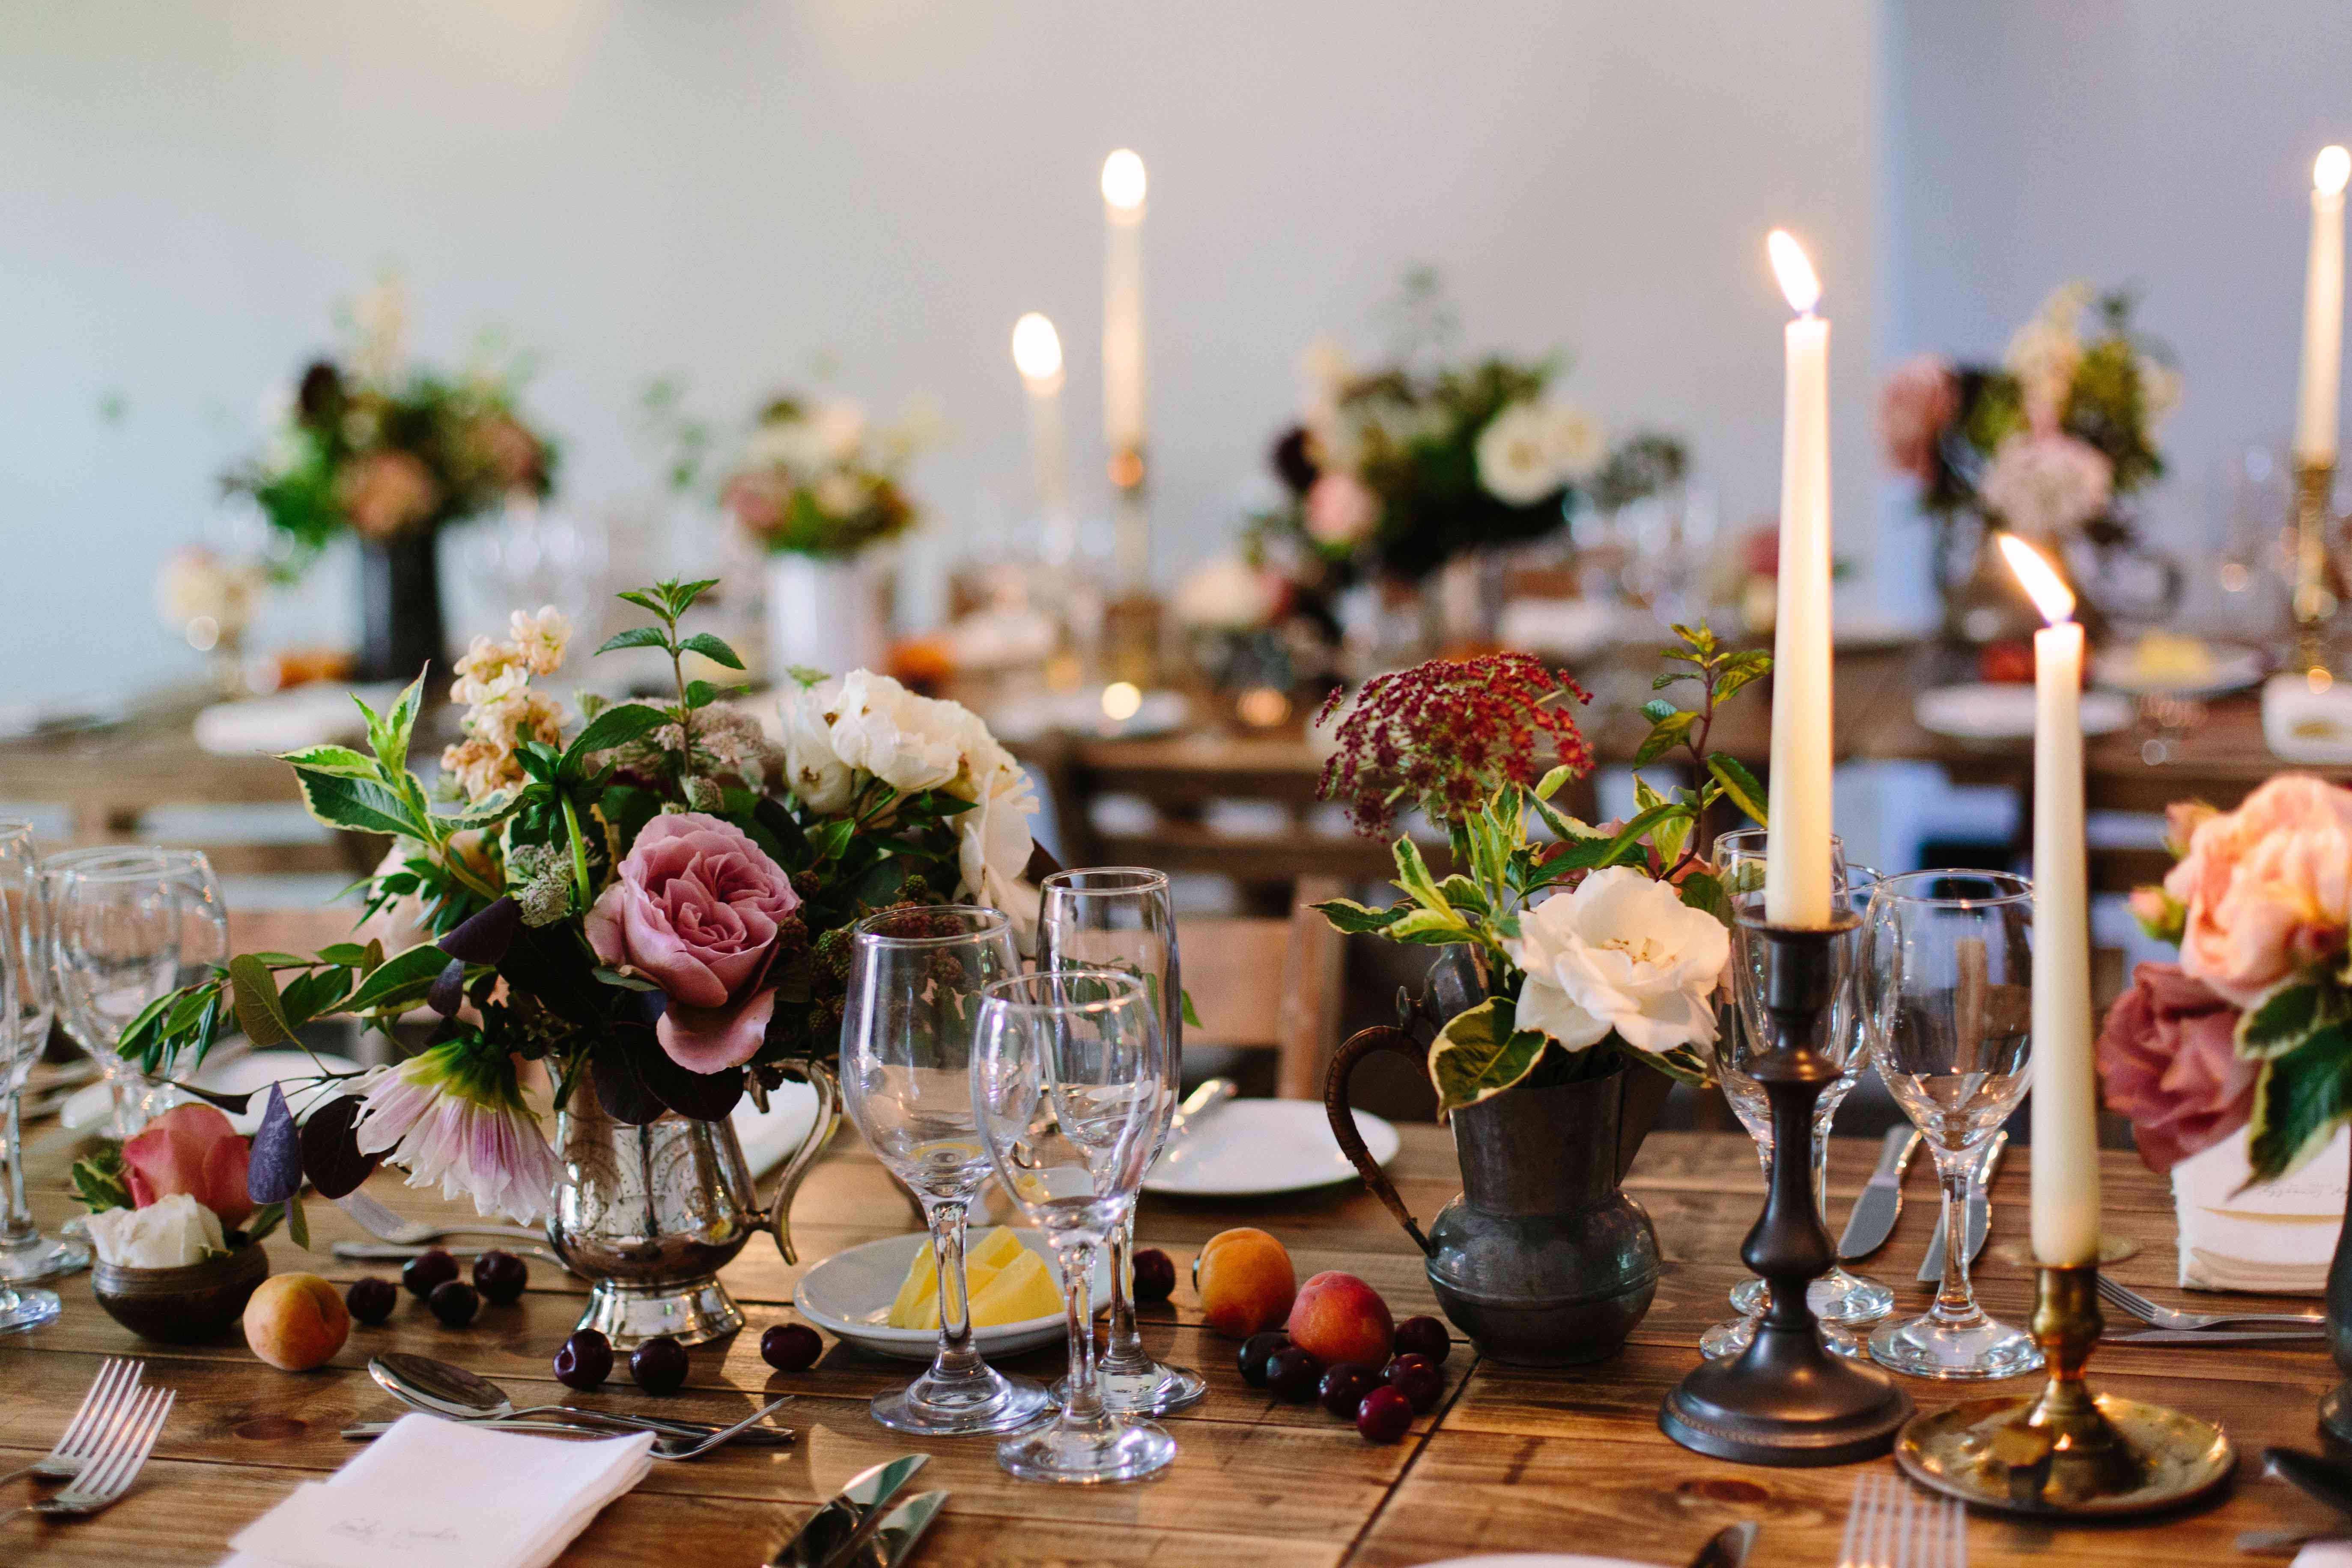 Candlestick Table Setting